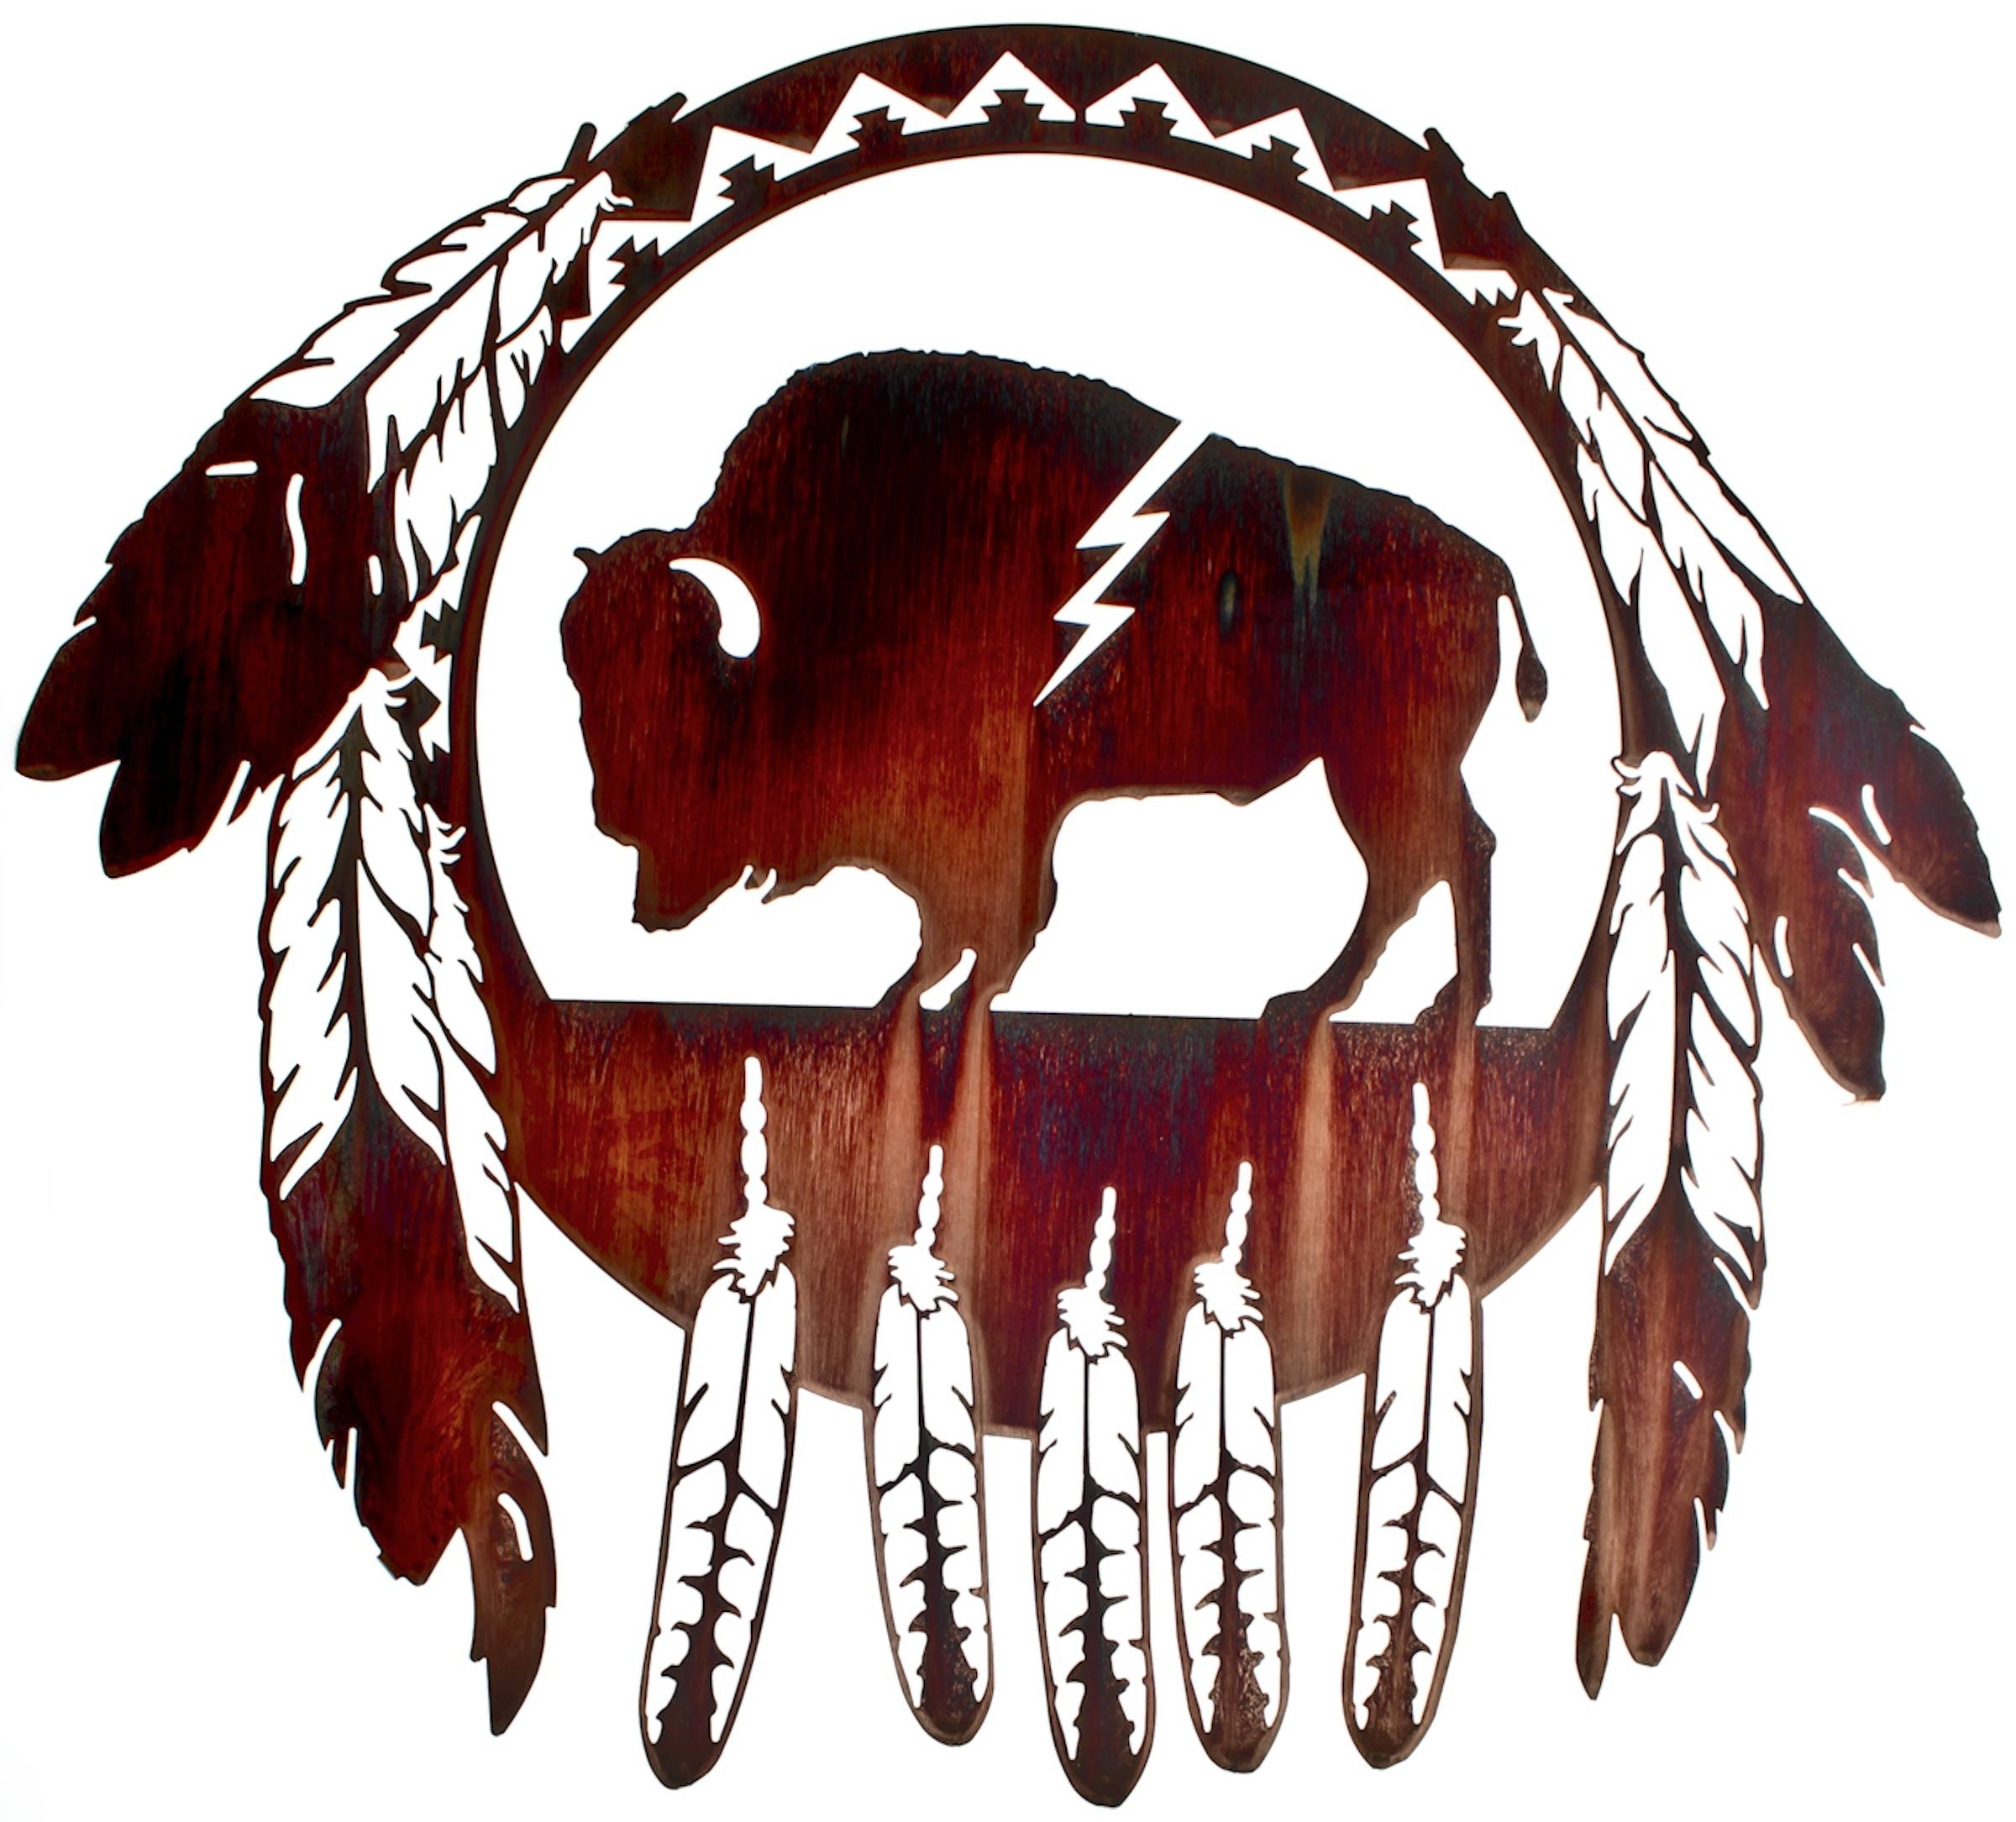 Buffalo Wall Art, Buffalo Wall Hangings, Metal Wall Sculptures Regarding Newest Native American Metal Wall Art (View 6 of 20)